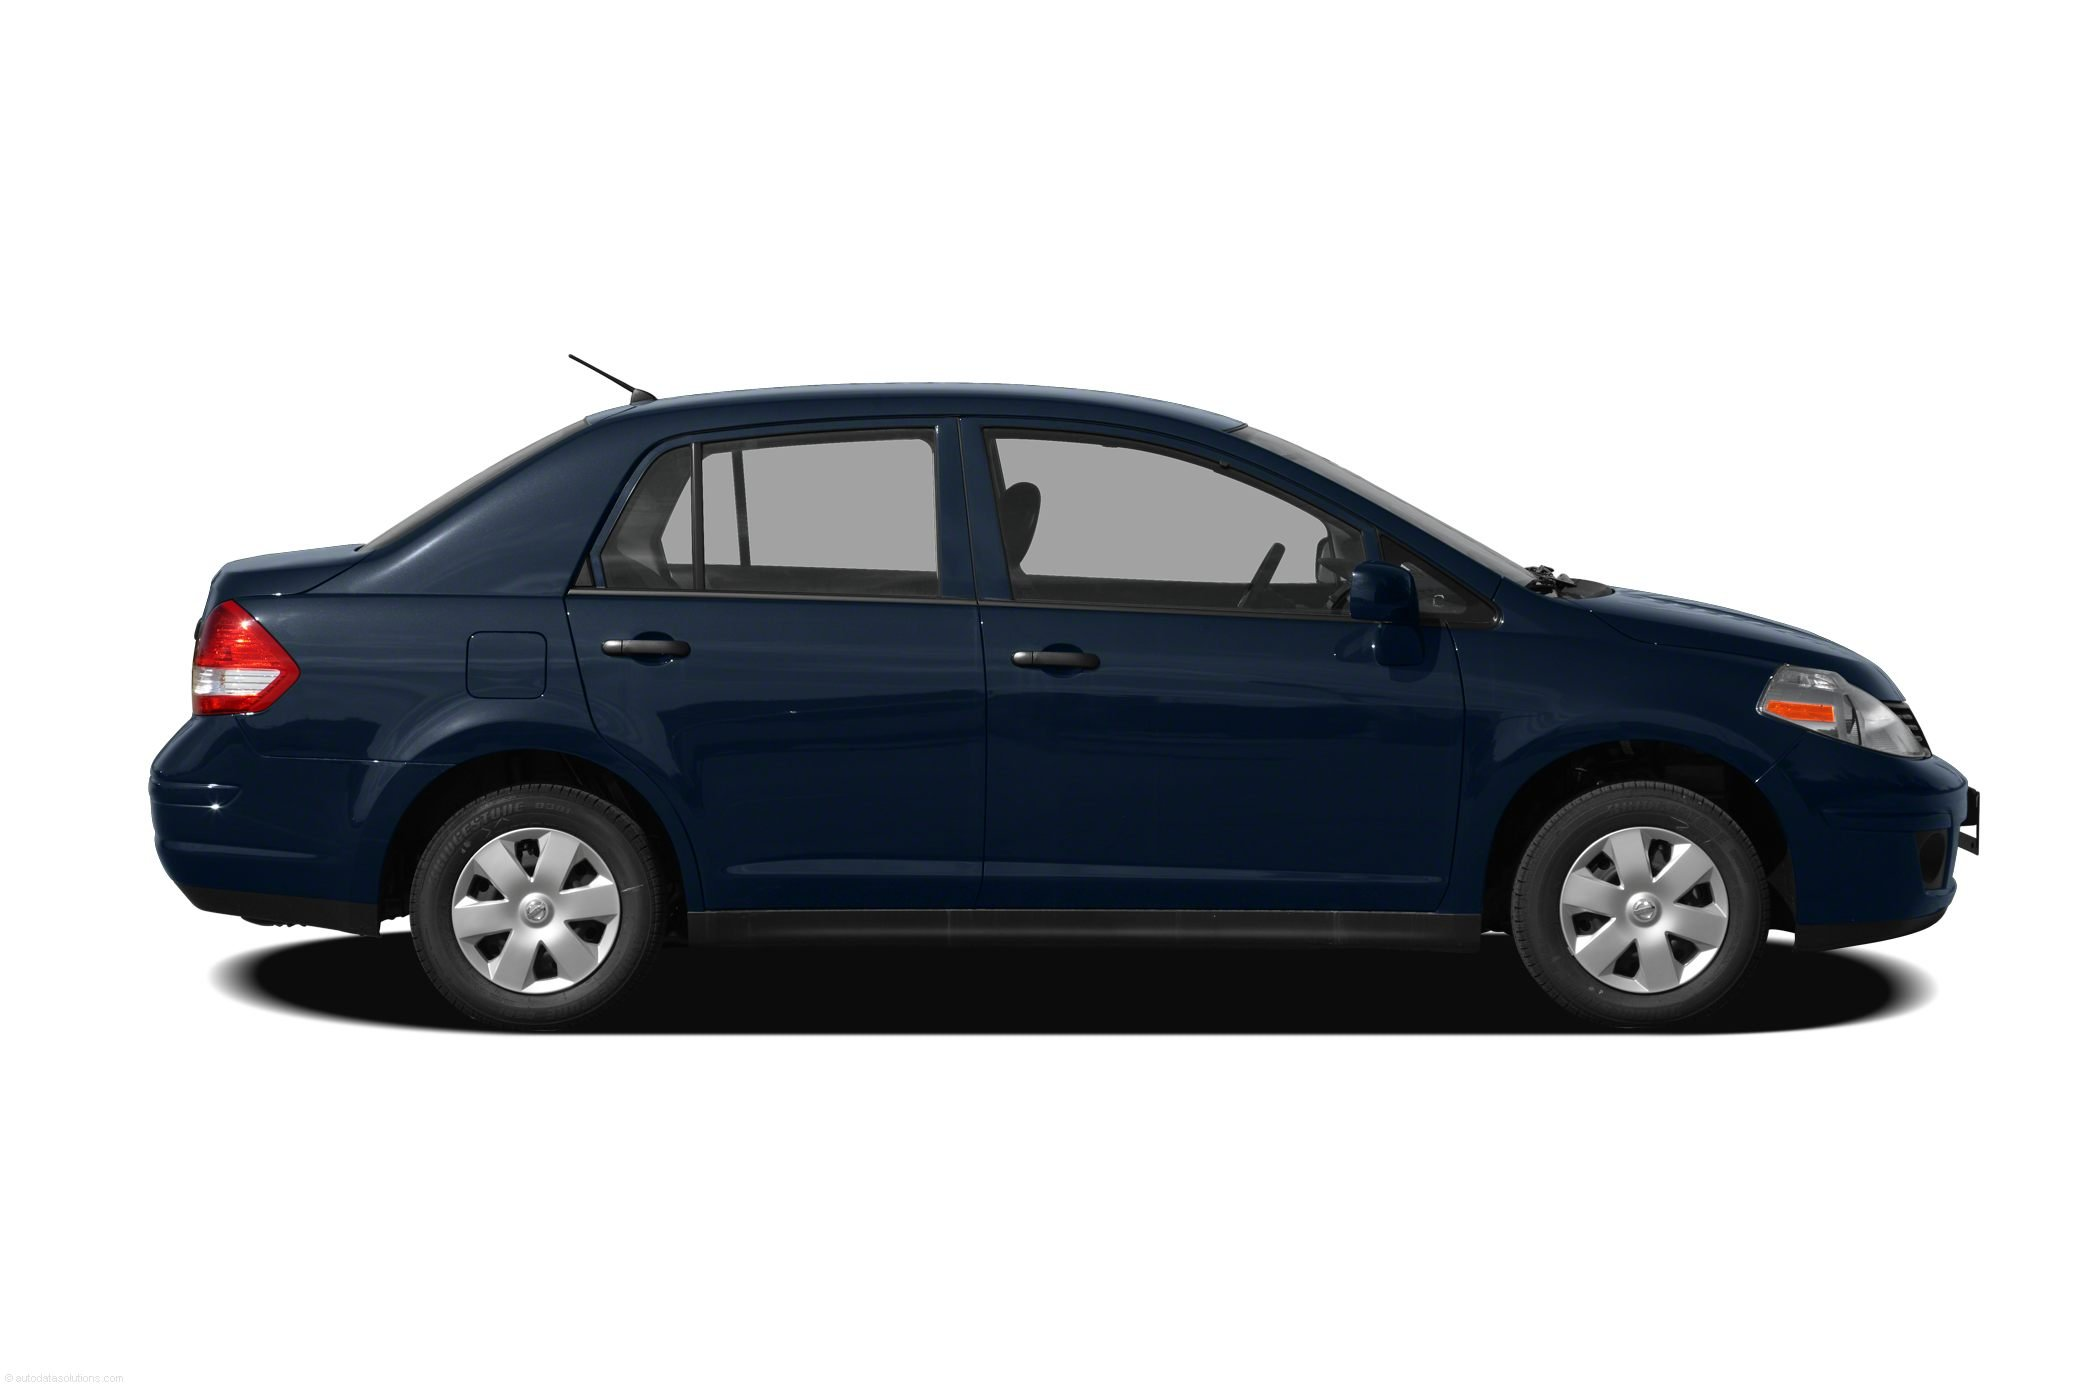 Pictures of nissan tiida sedan 2010